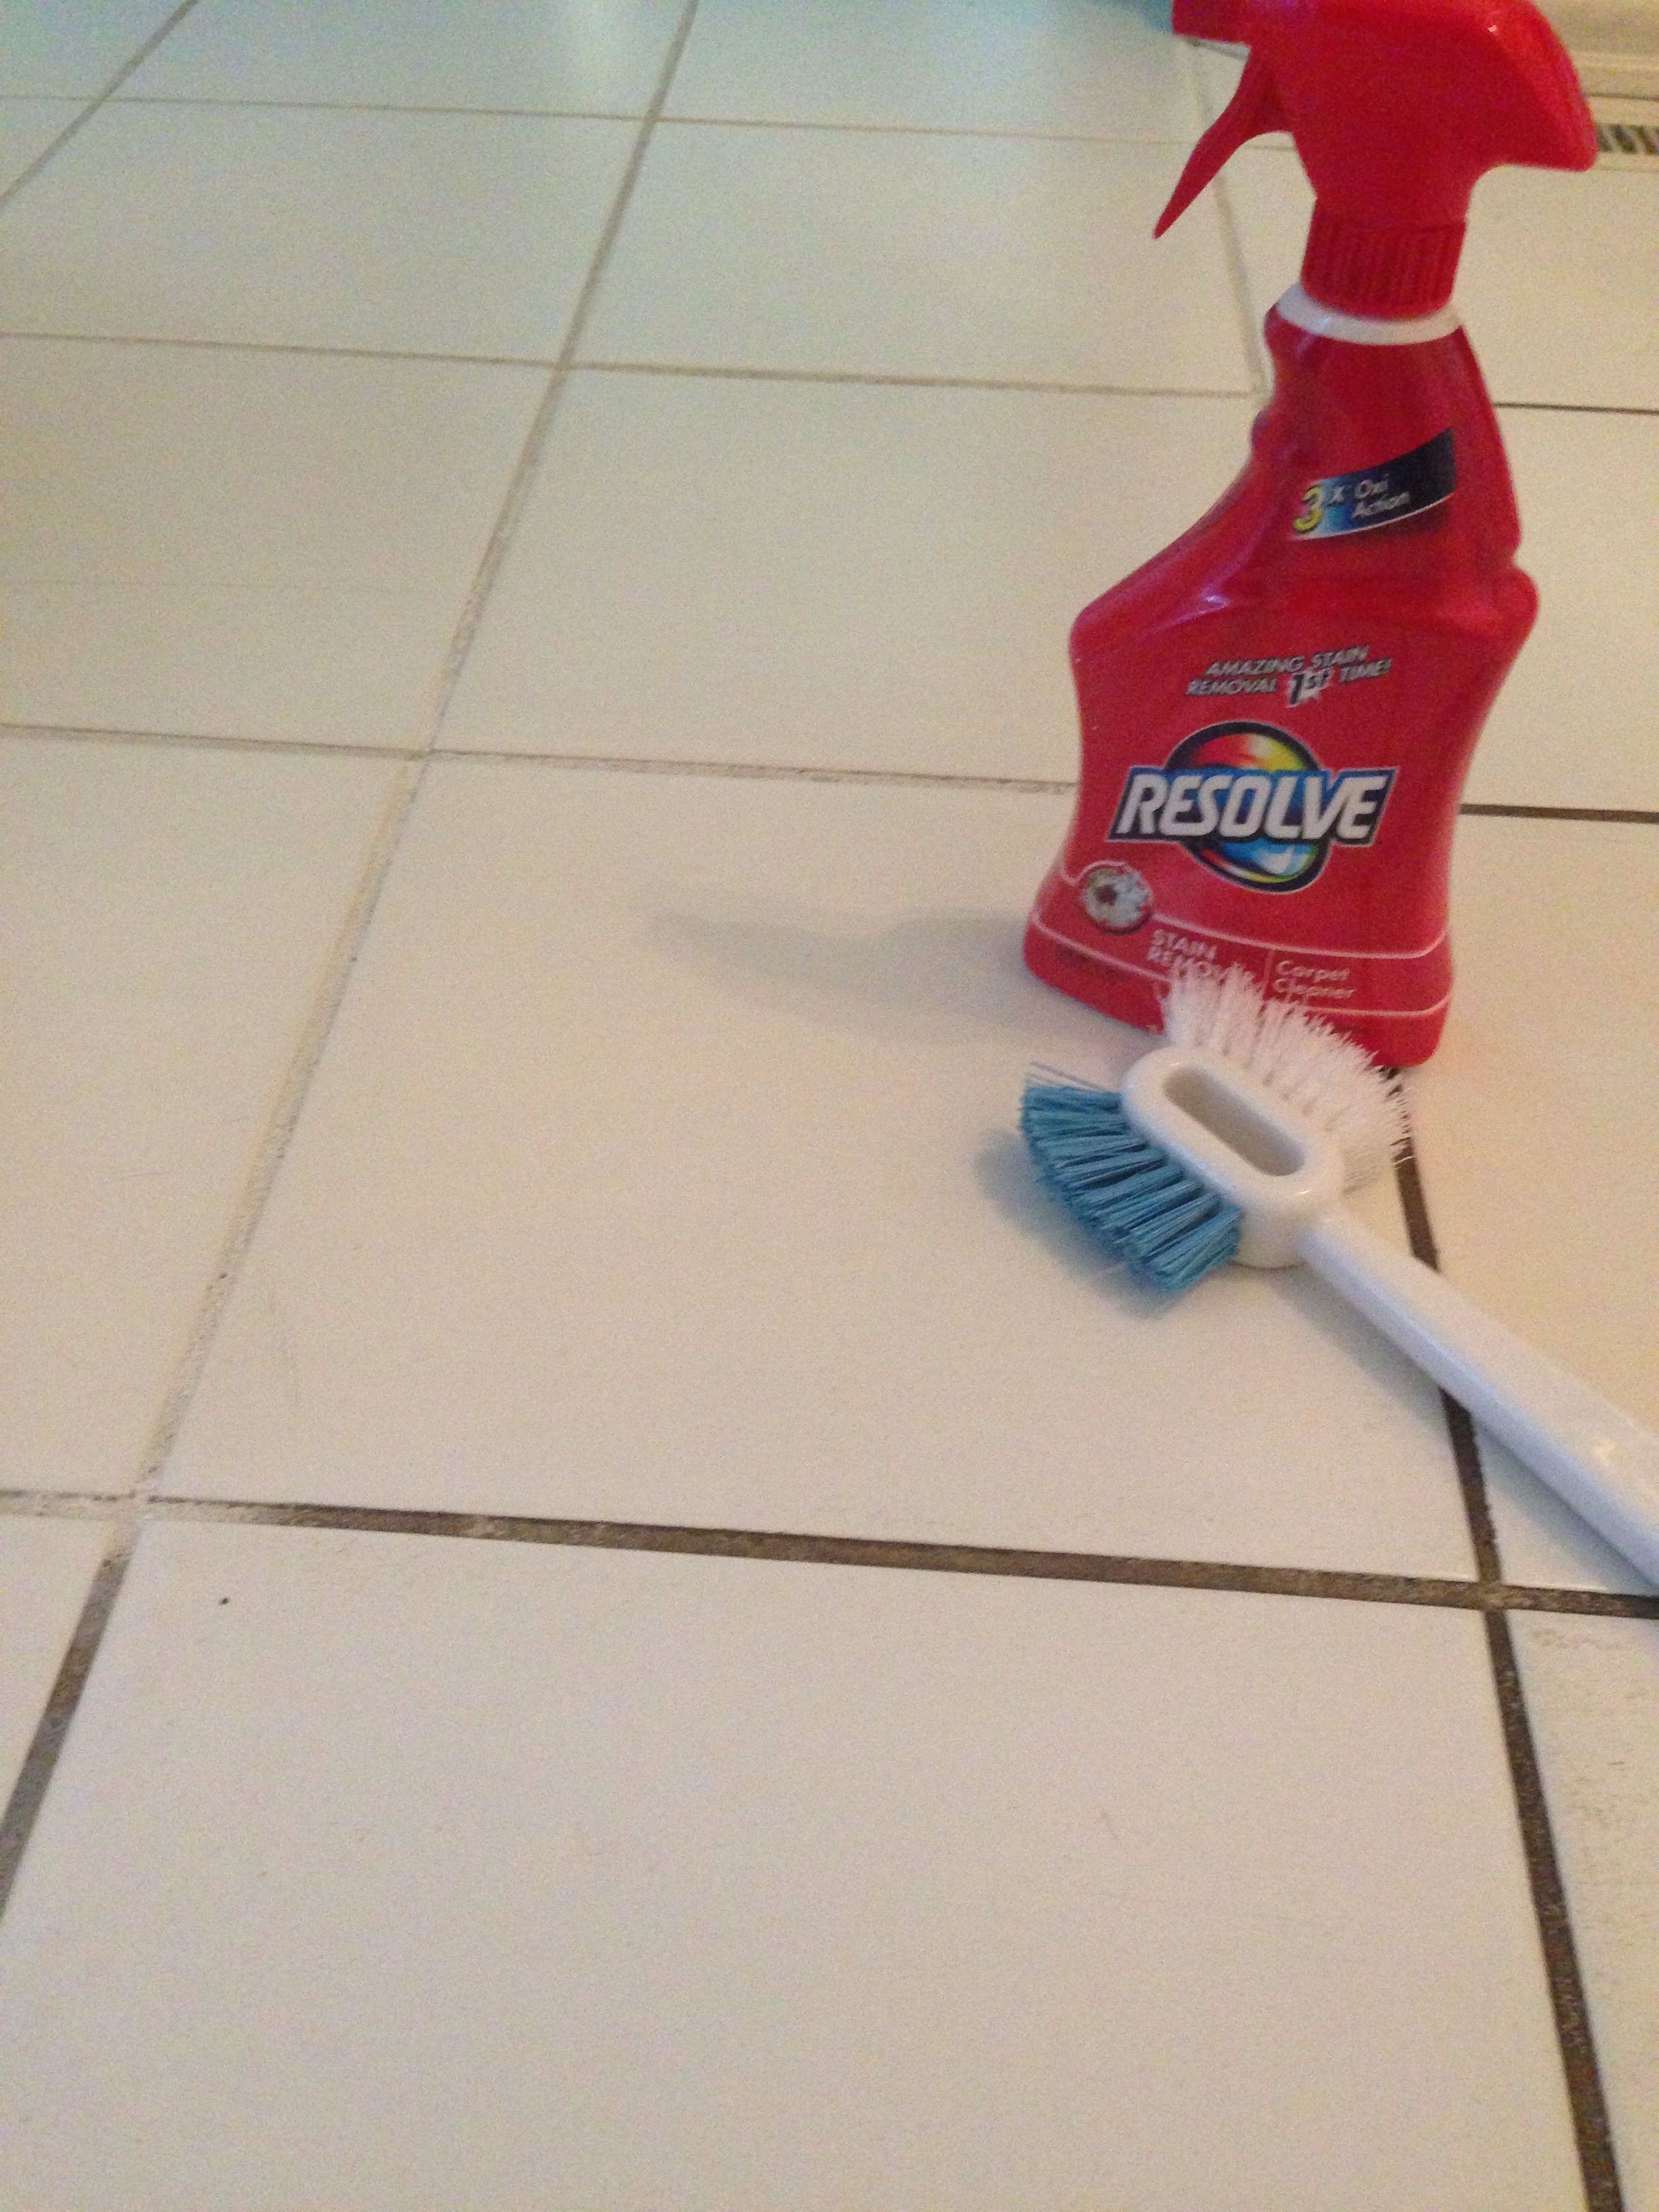 Resolve Carpet Cleaner To Clean Grout Regrout Shower Tileclean